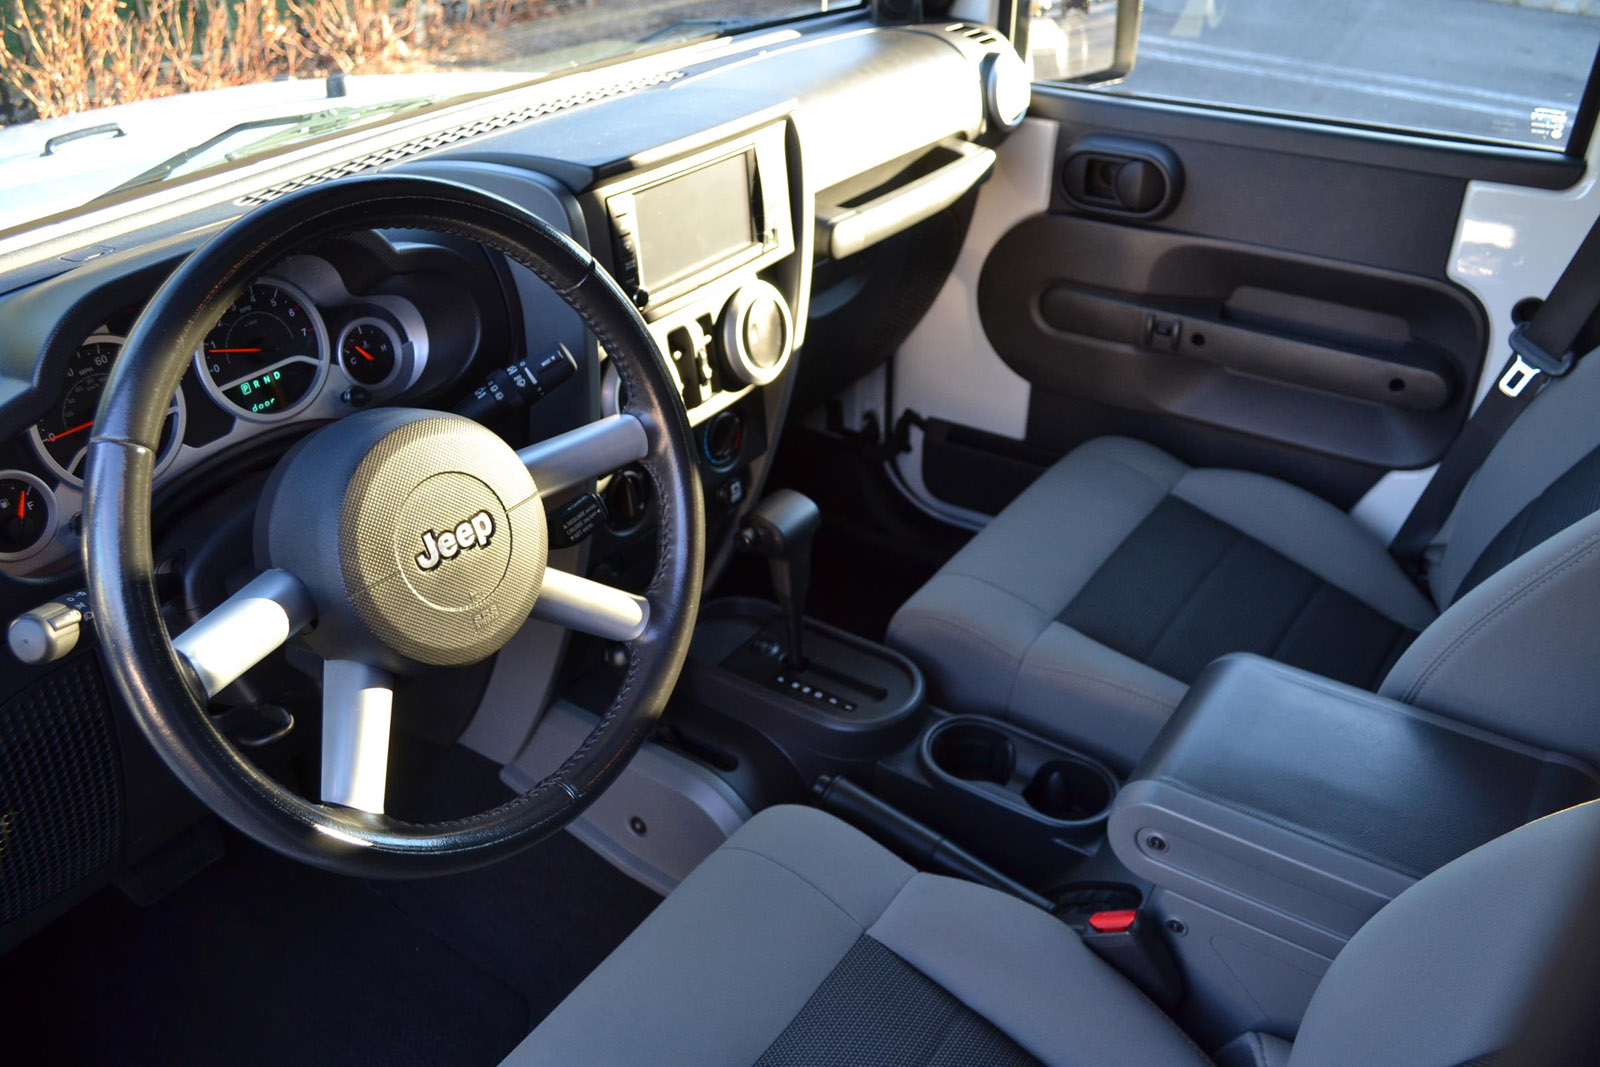 2010 Jeep Wrangler Unlimited Sahara Pre-Owned